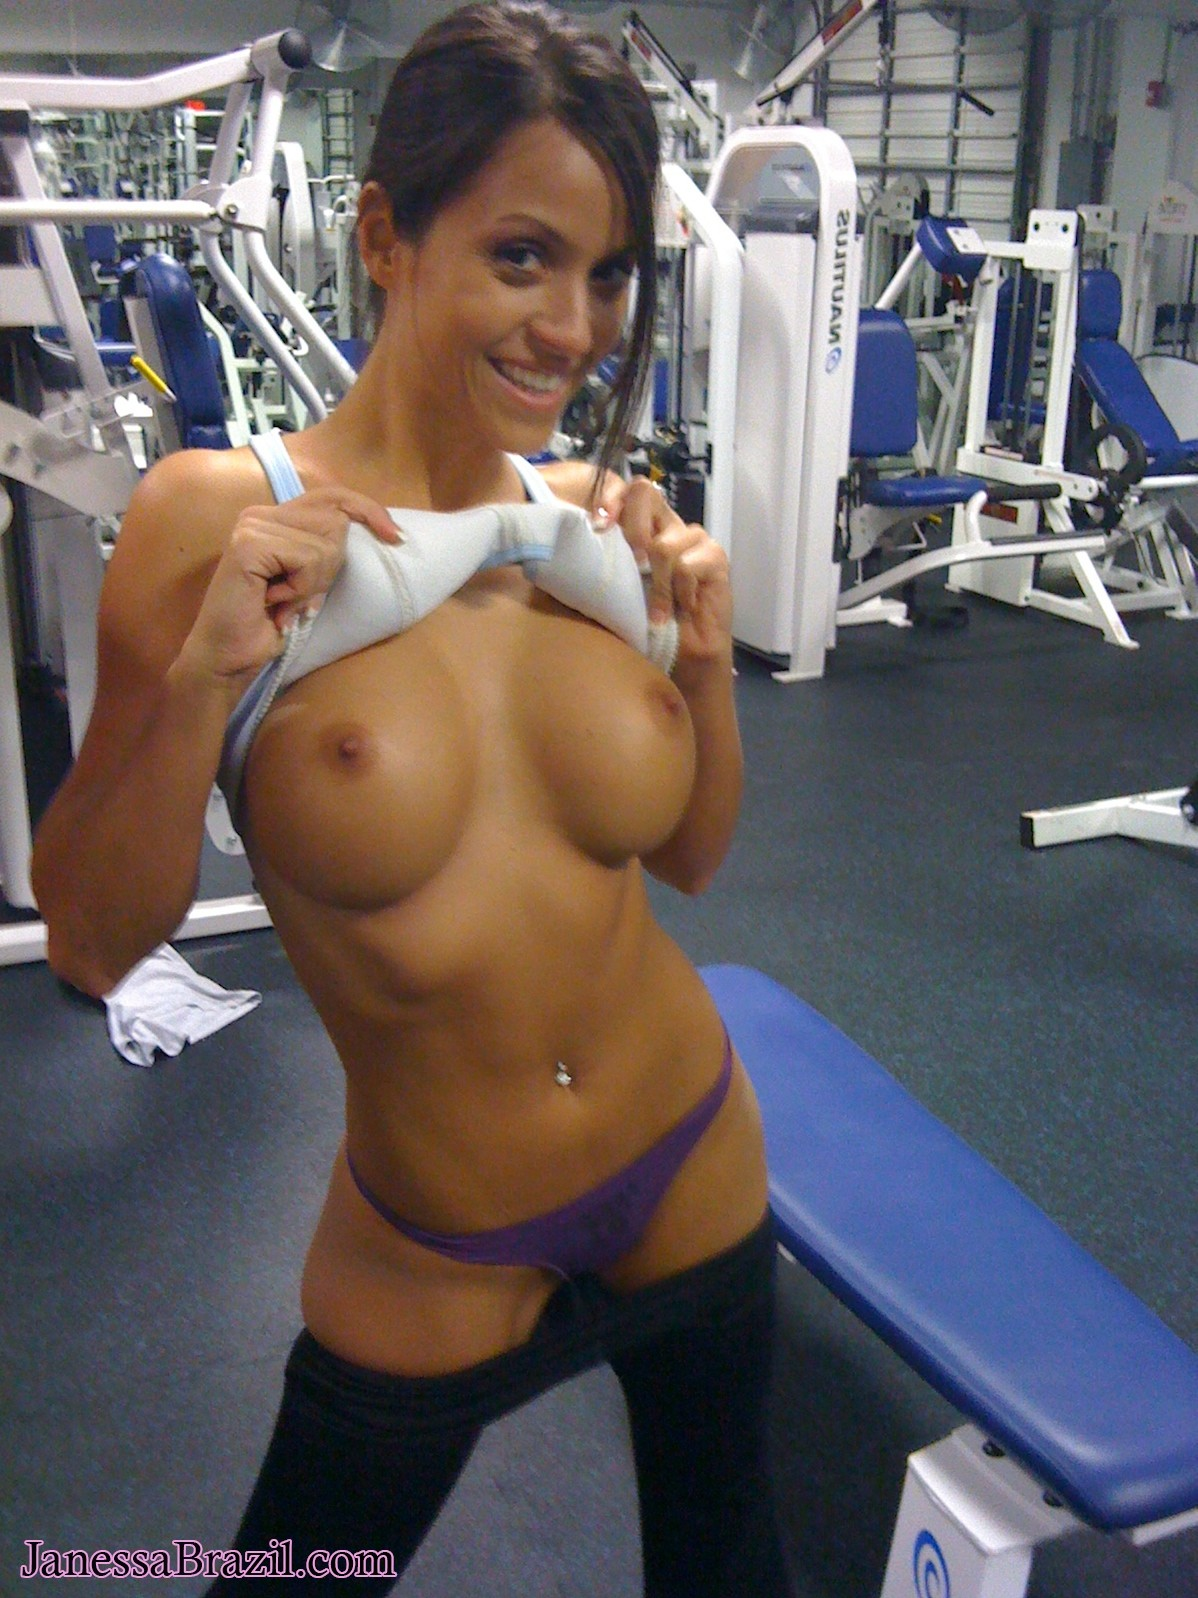 Janessa Brazil - Nude Hot Gf College Girl At Gym 34036-9903